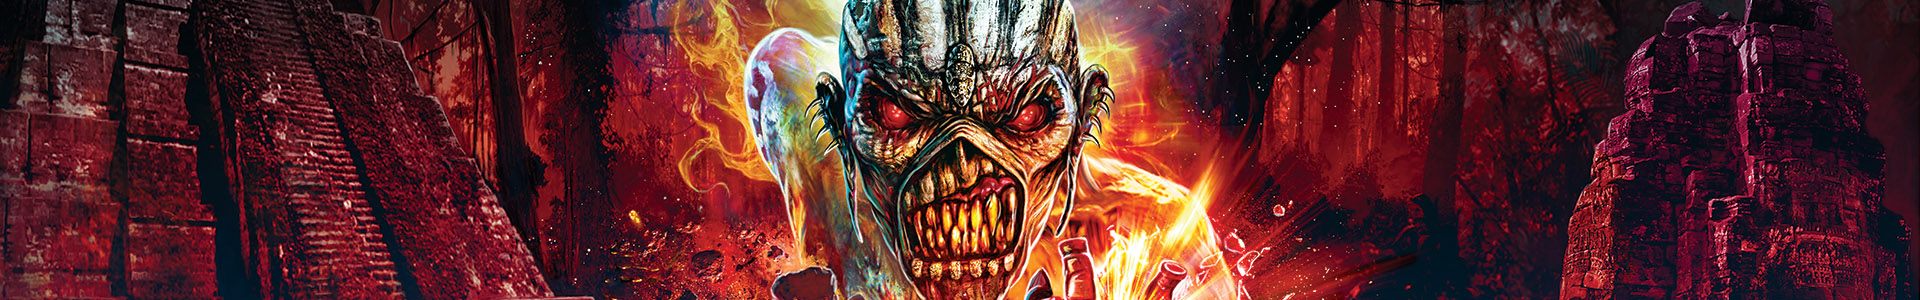 """IRON MAIDEN """"THE BOOK OF SOULS"""" TOUR RETURNS TO NORTH AMERICA IN 2017!"""